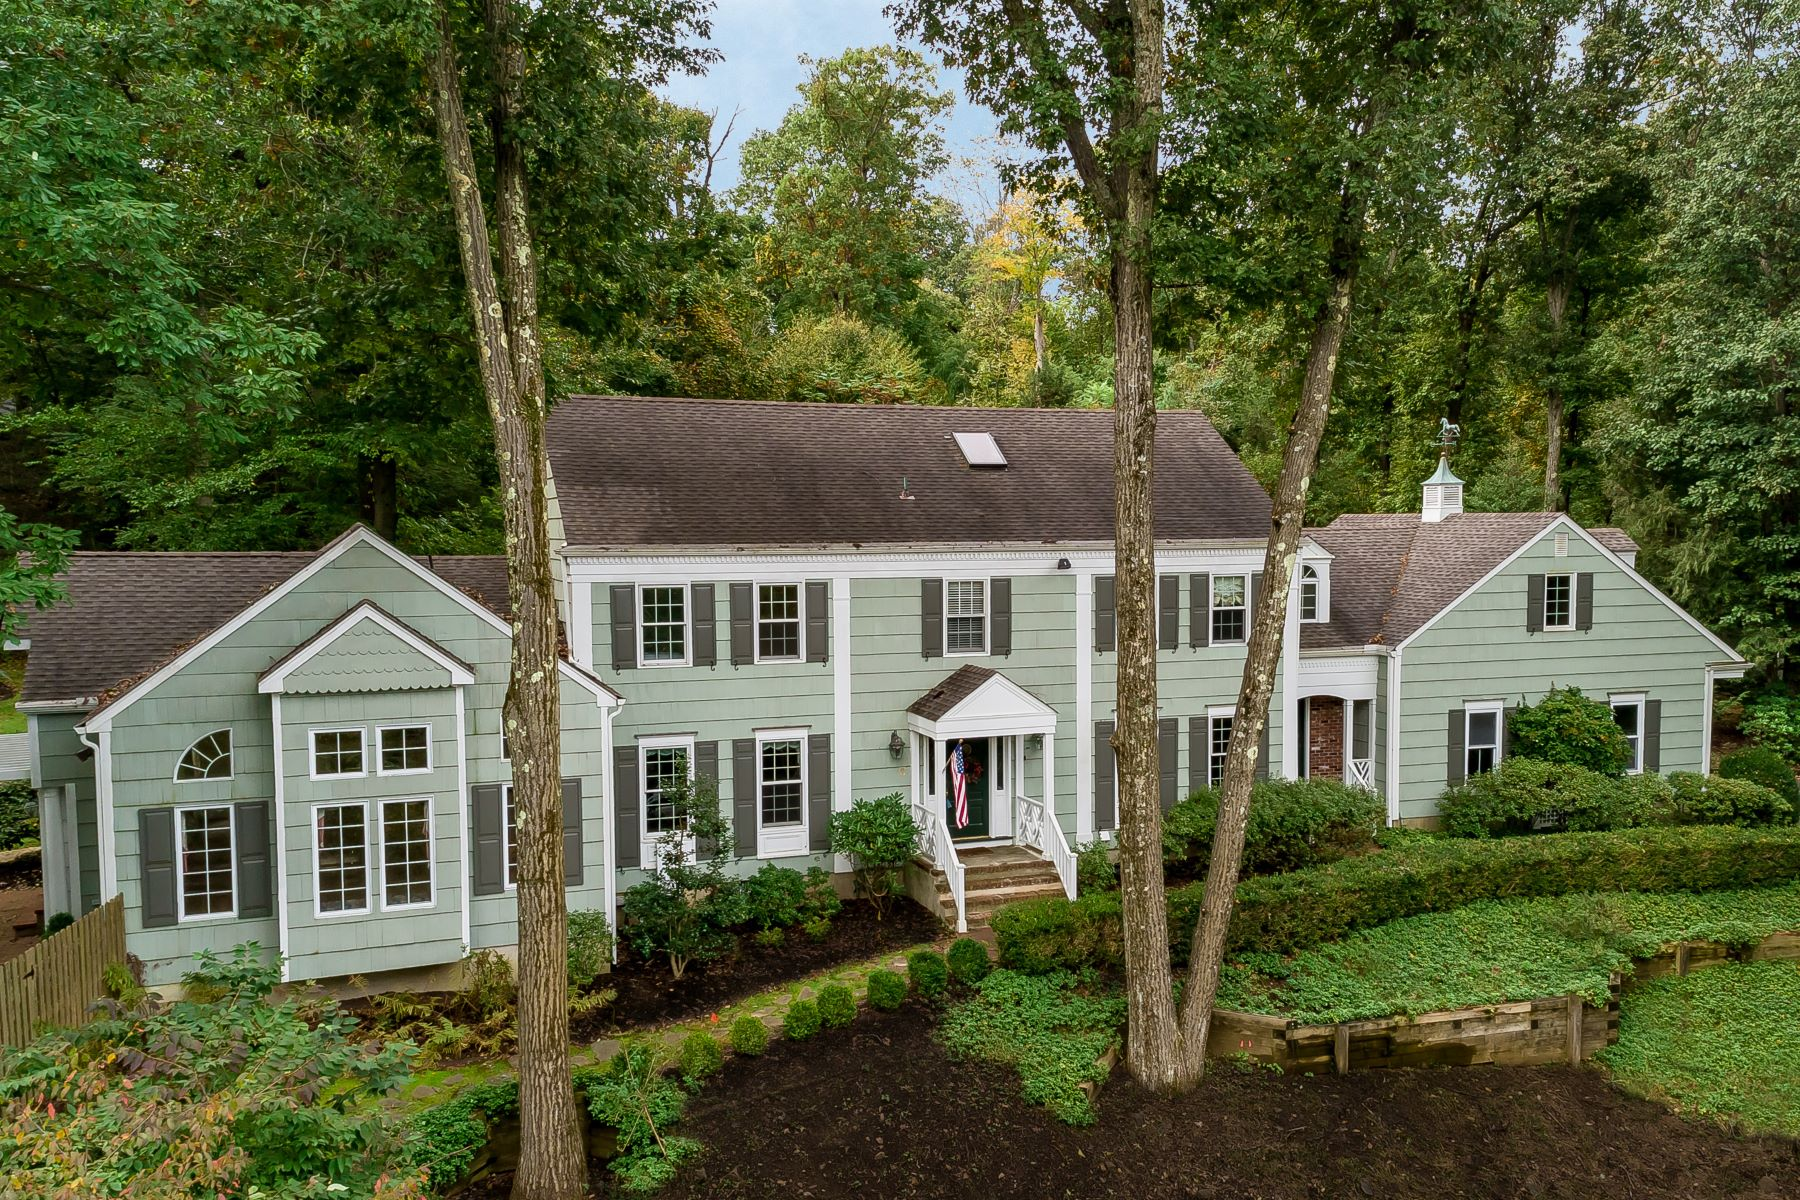 Single Family Home for Sale at Delightful Colonial 154 Deer Ridge Road, Basking Ridge, New Jersey 07920 United States